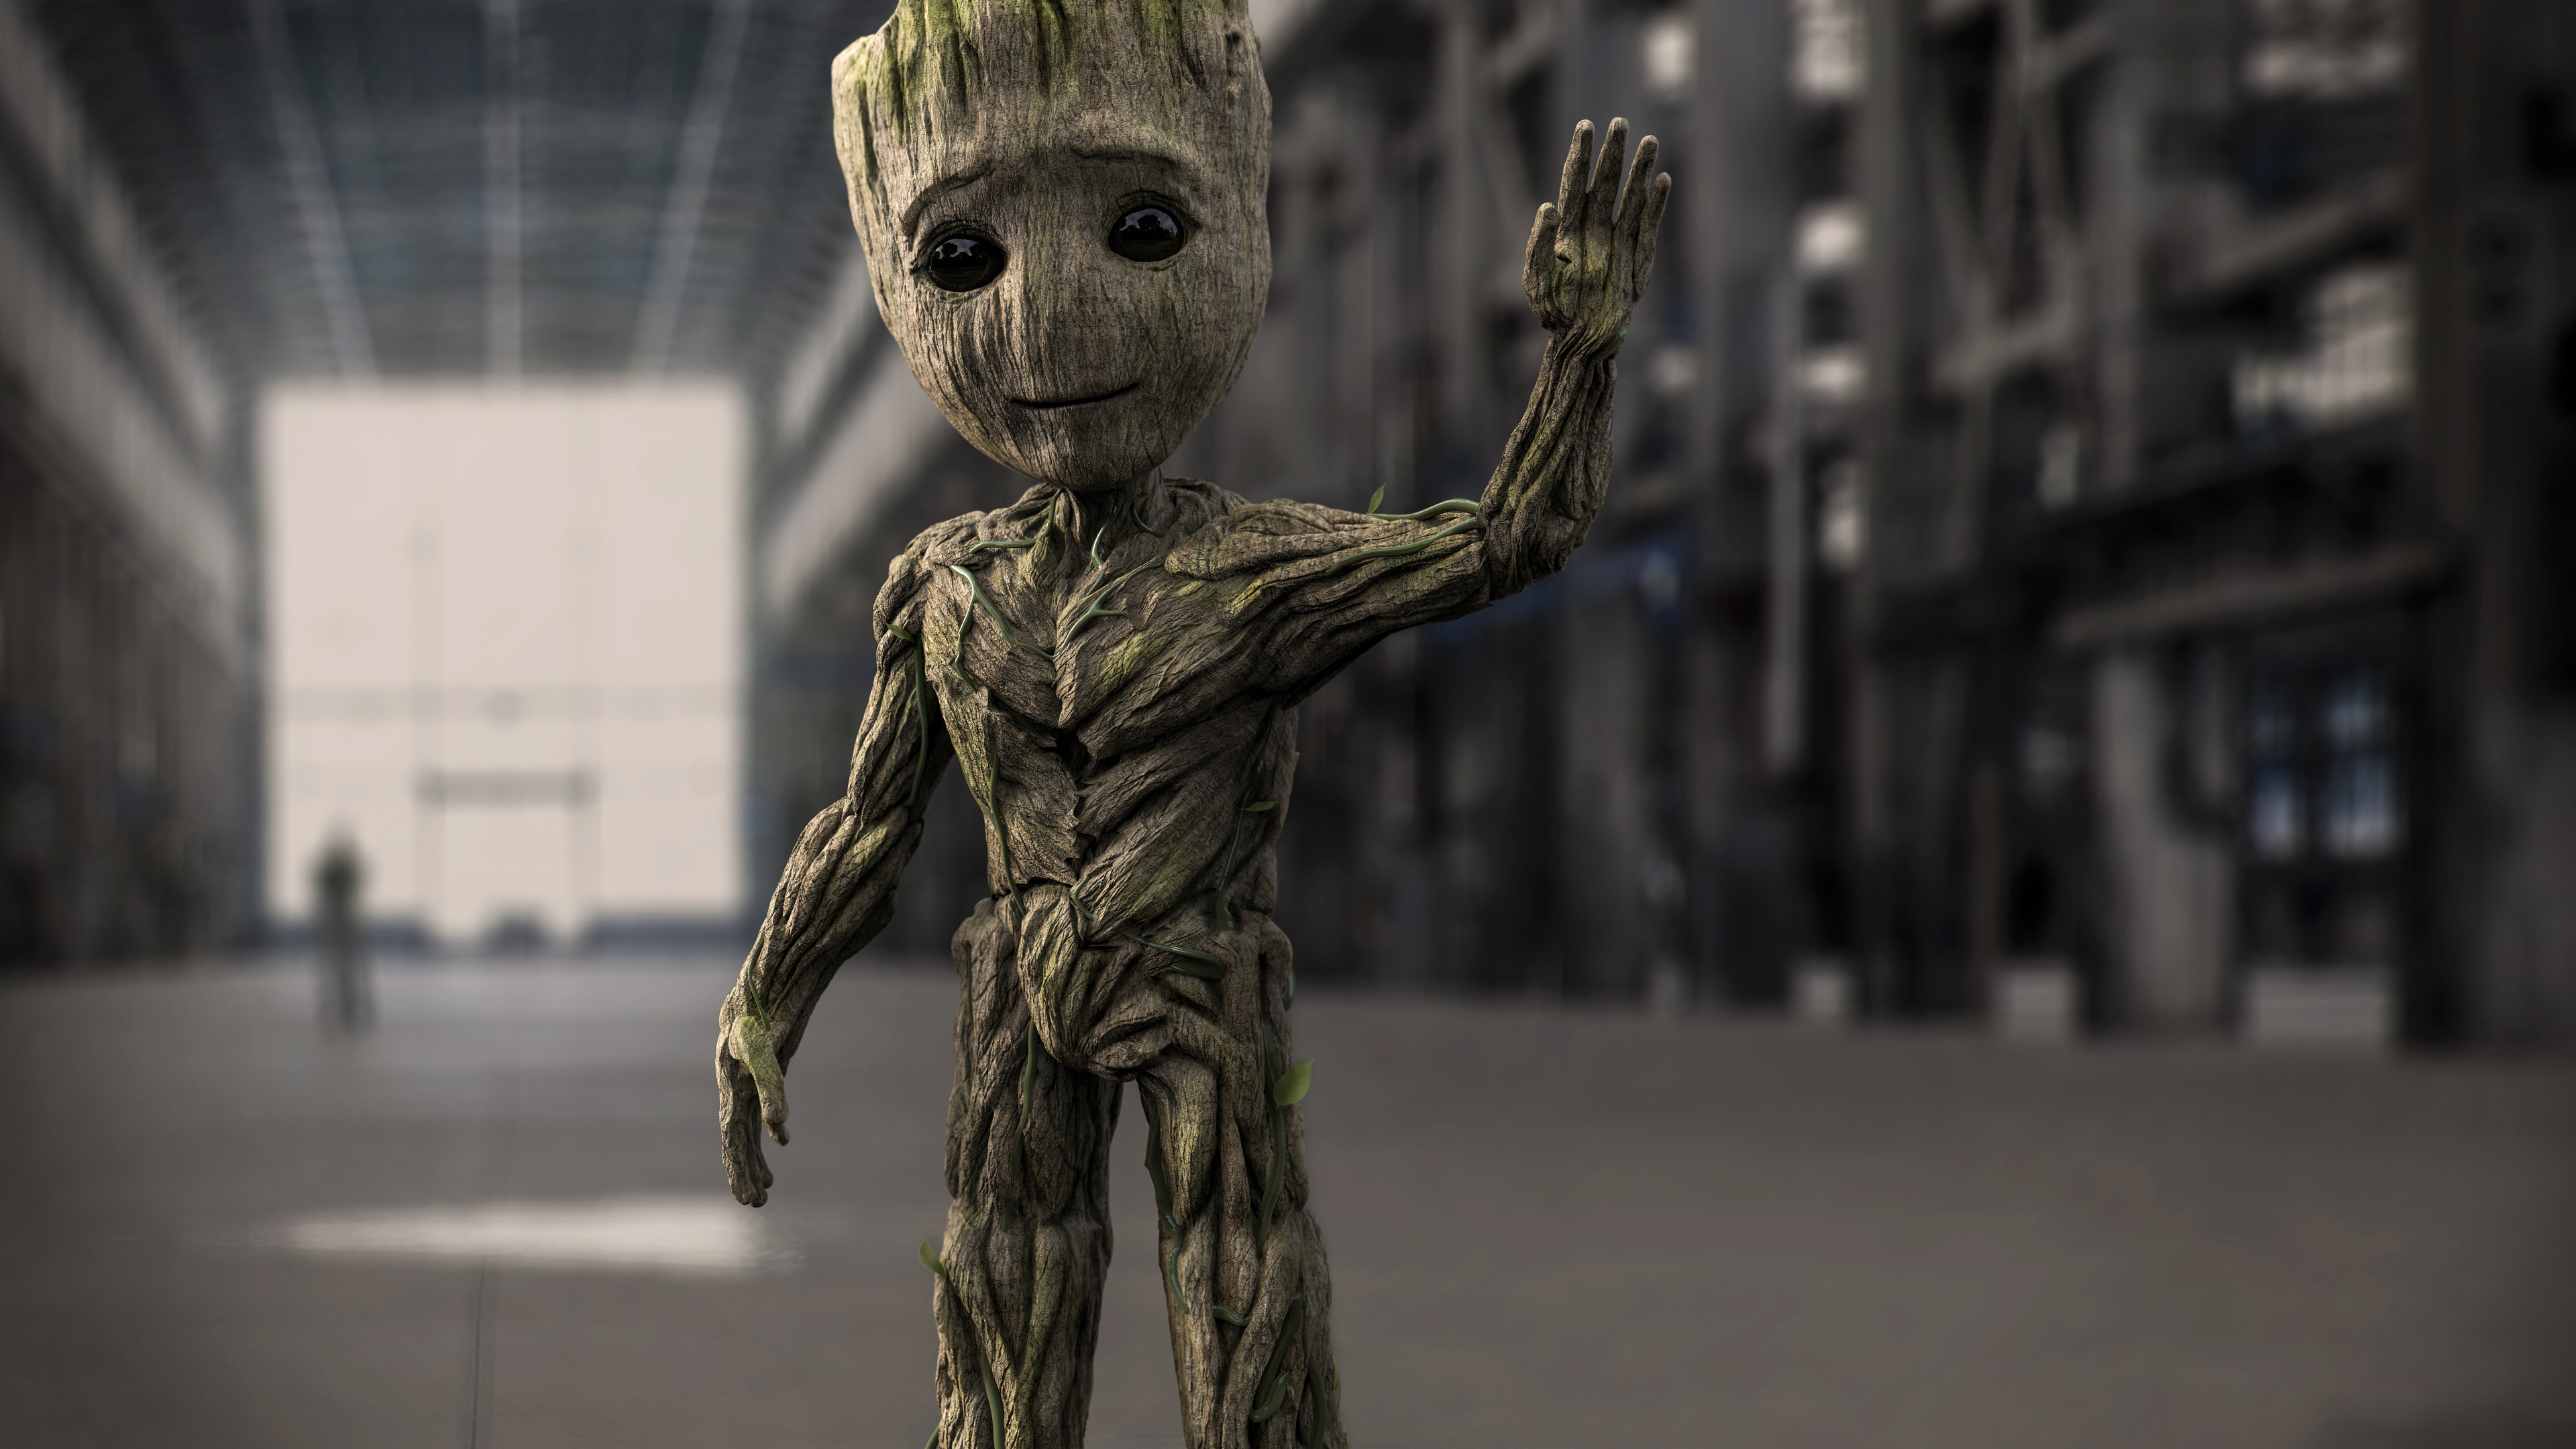 baby groot art 4k 1544923173 - Baby Groot art 4k - superheroes wallpapers, hd-wallpapers, baby groot wallpapers, 4k-wallpapers